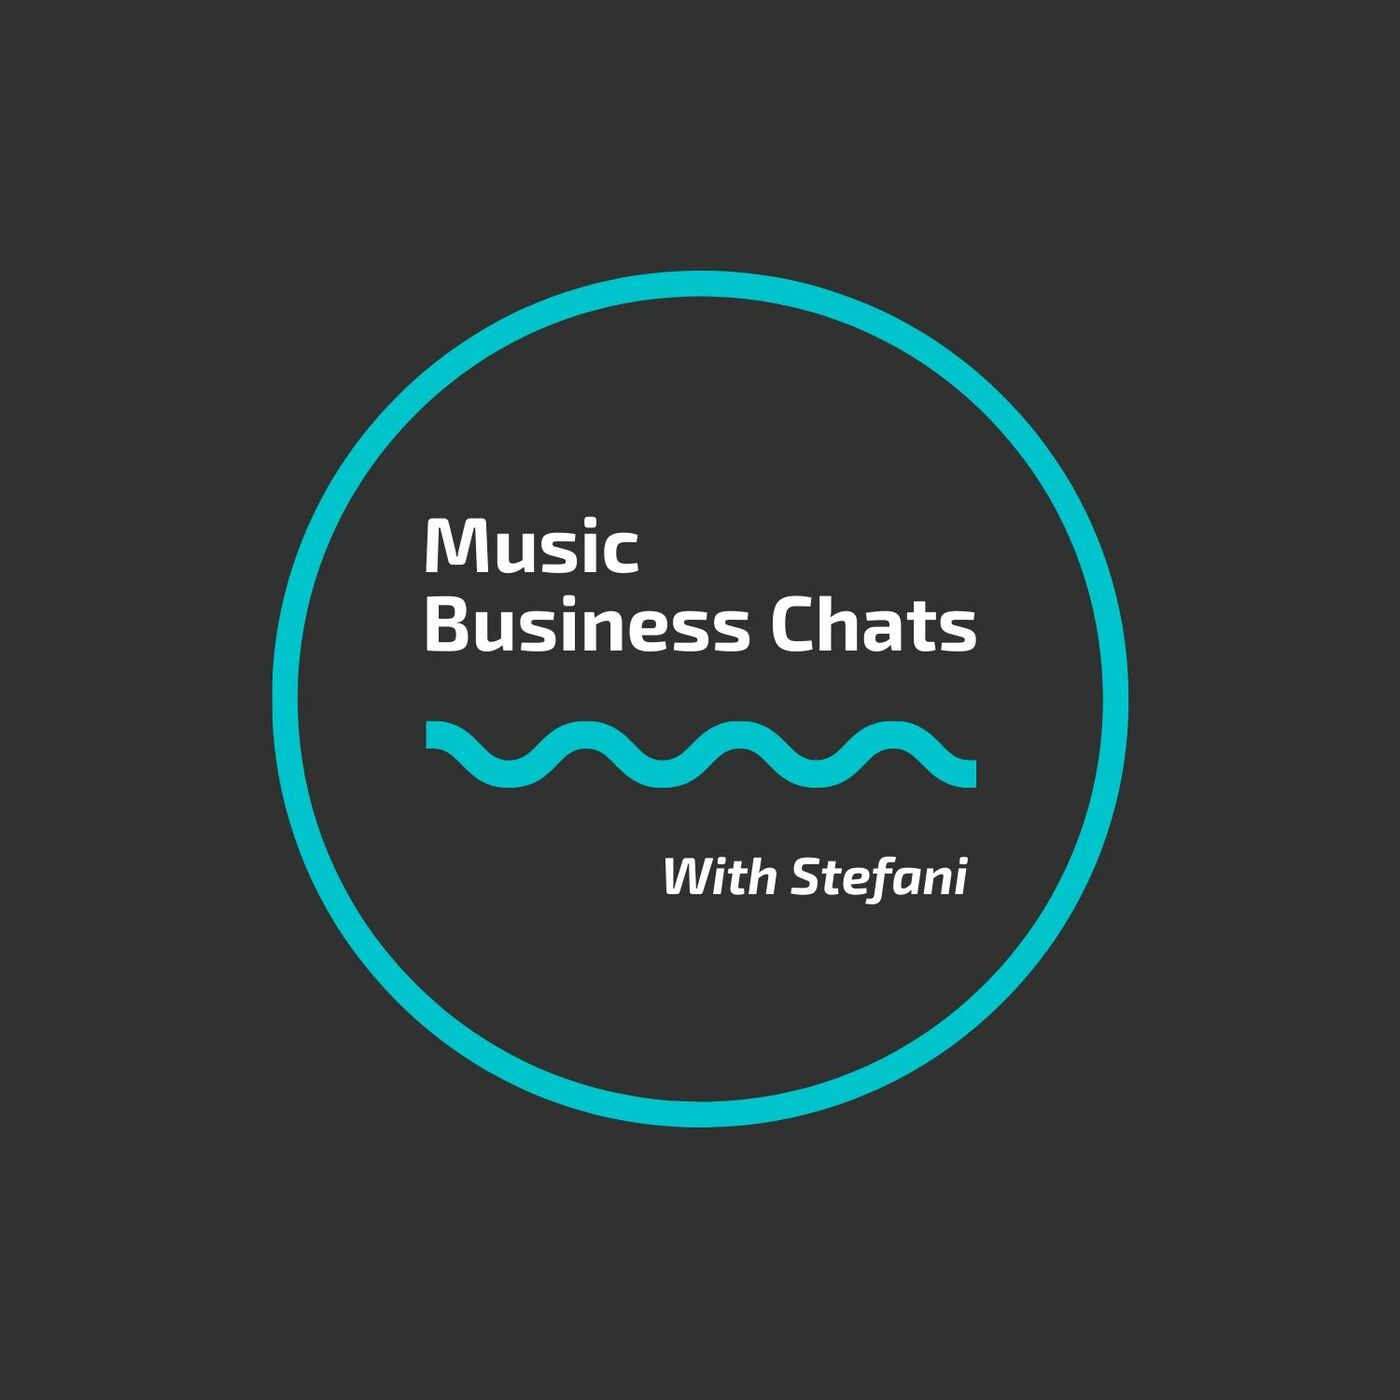 Music Business Chats With Stefani